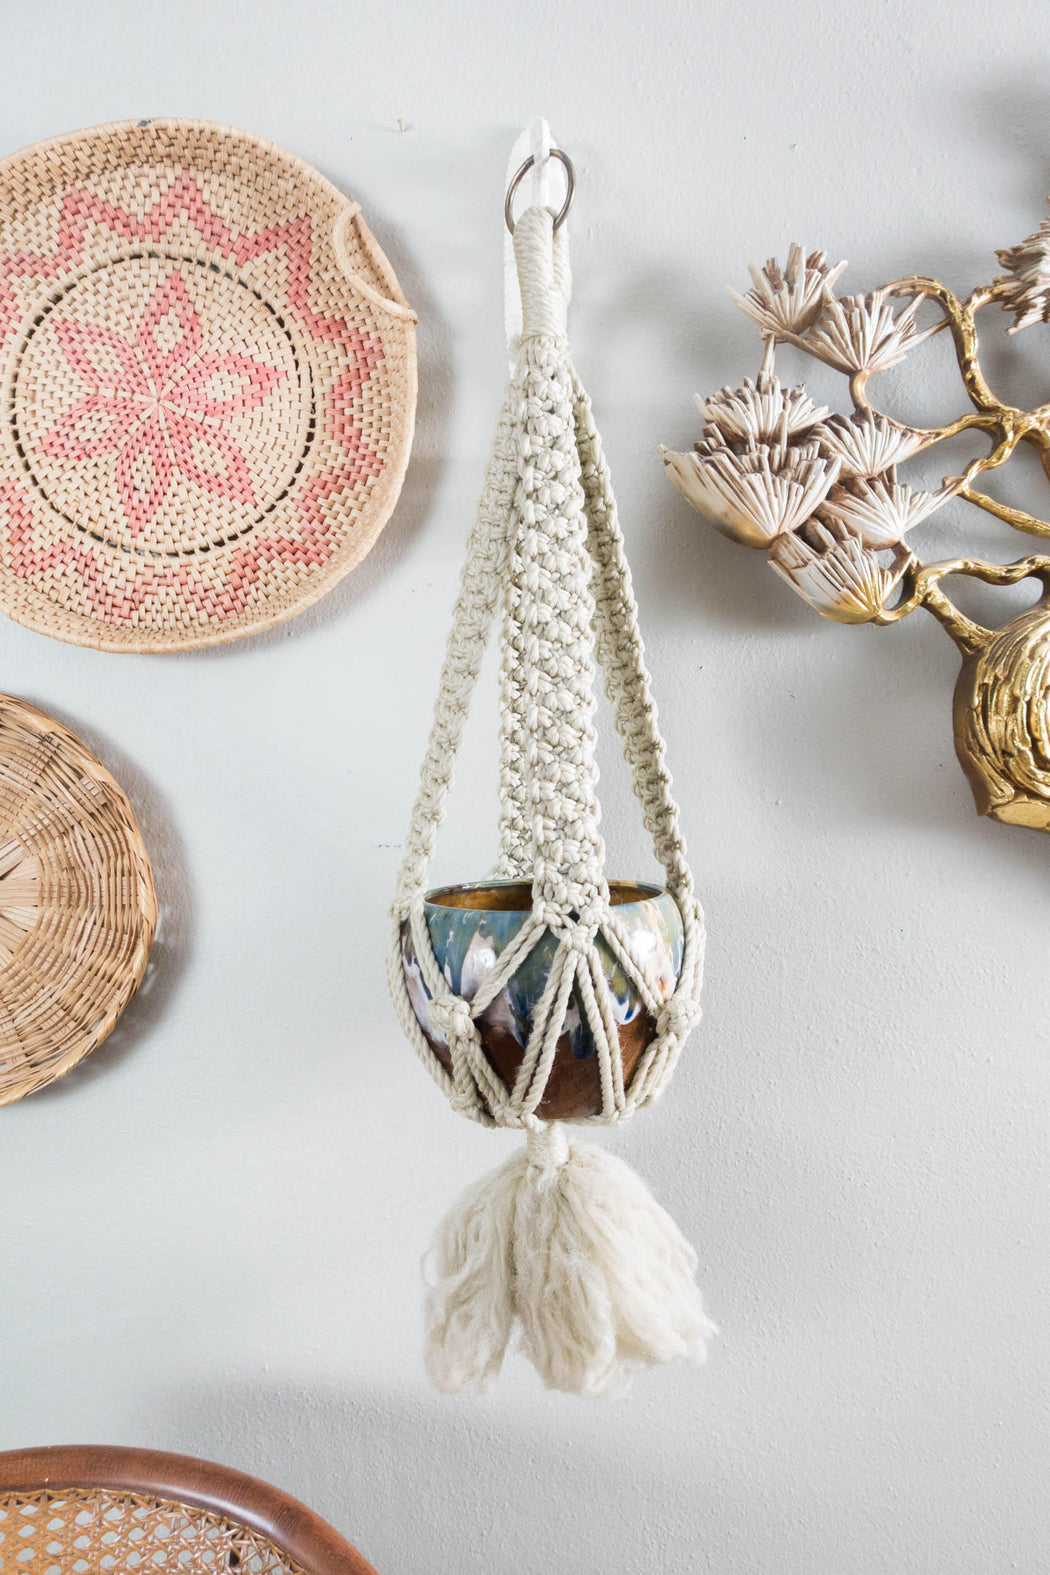 Vintage Blue and Brown Macrame Hanging Planter